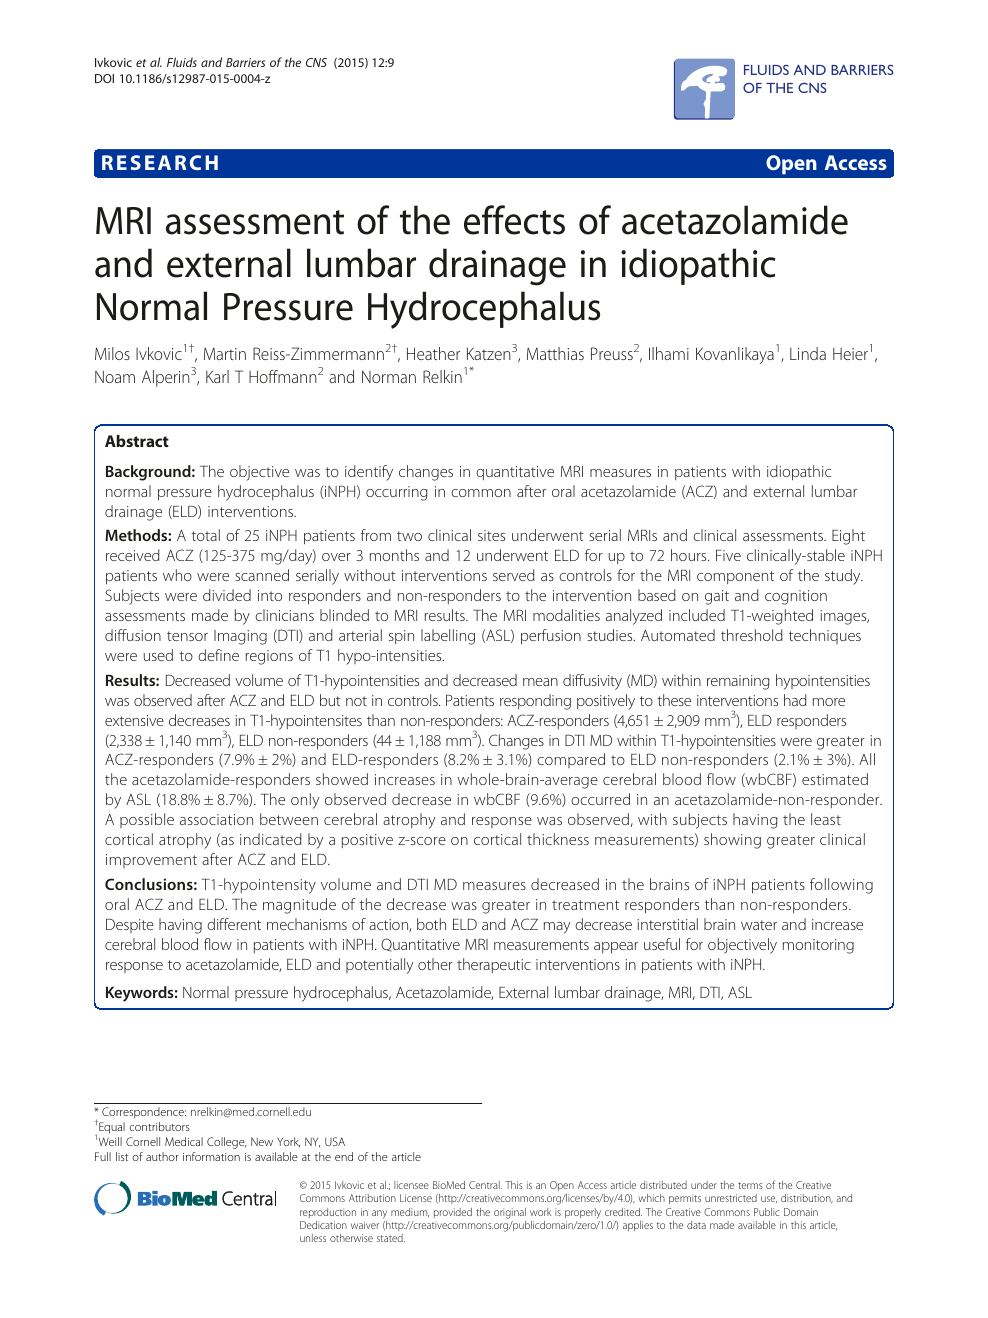 MRI assessment of the effects of acetazolamide and external